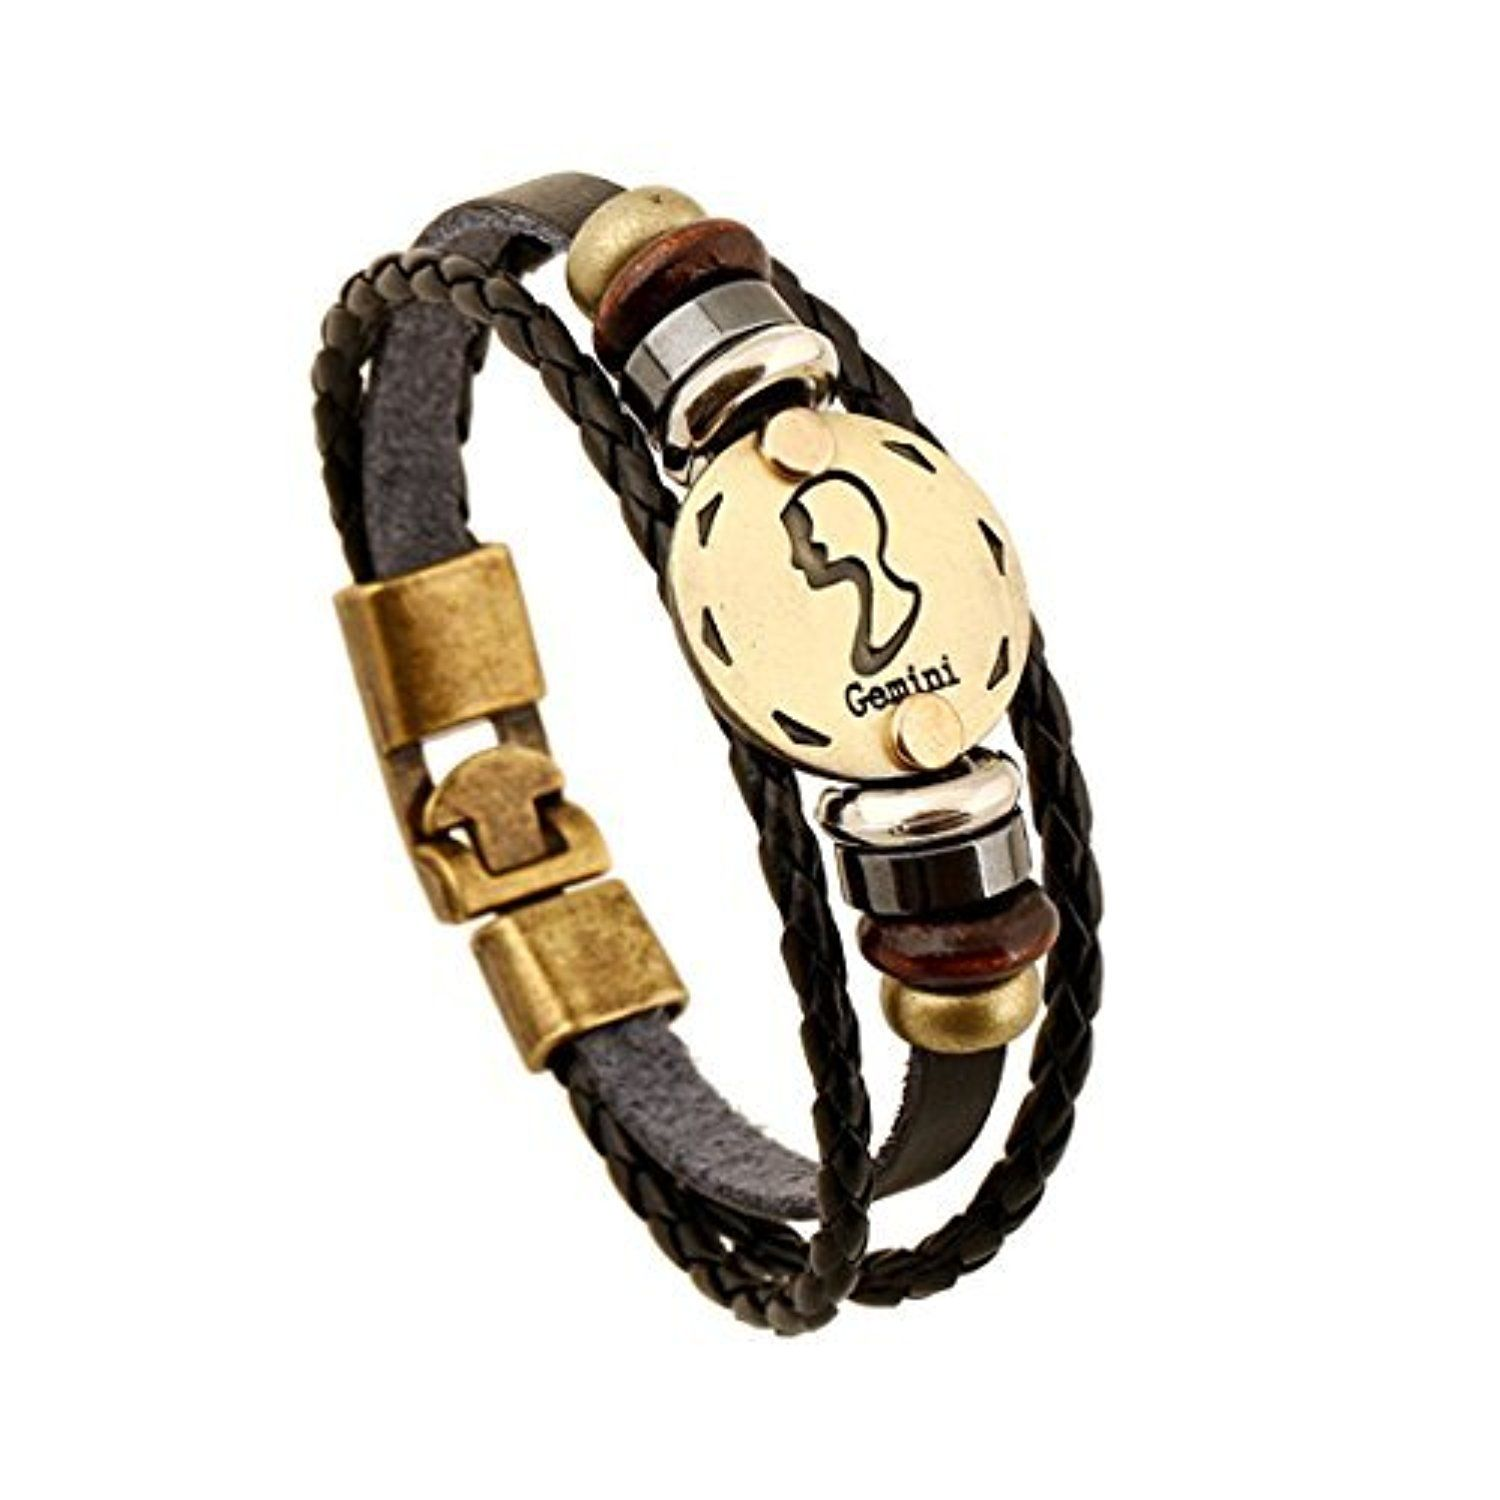 Xiafen zodiac sign logo charms leather bracelet for women and men